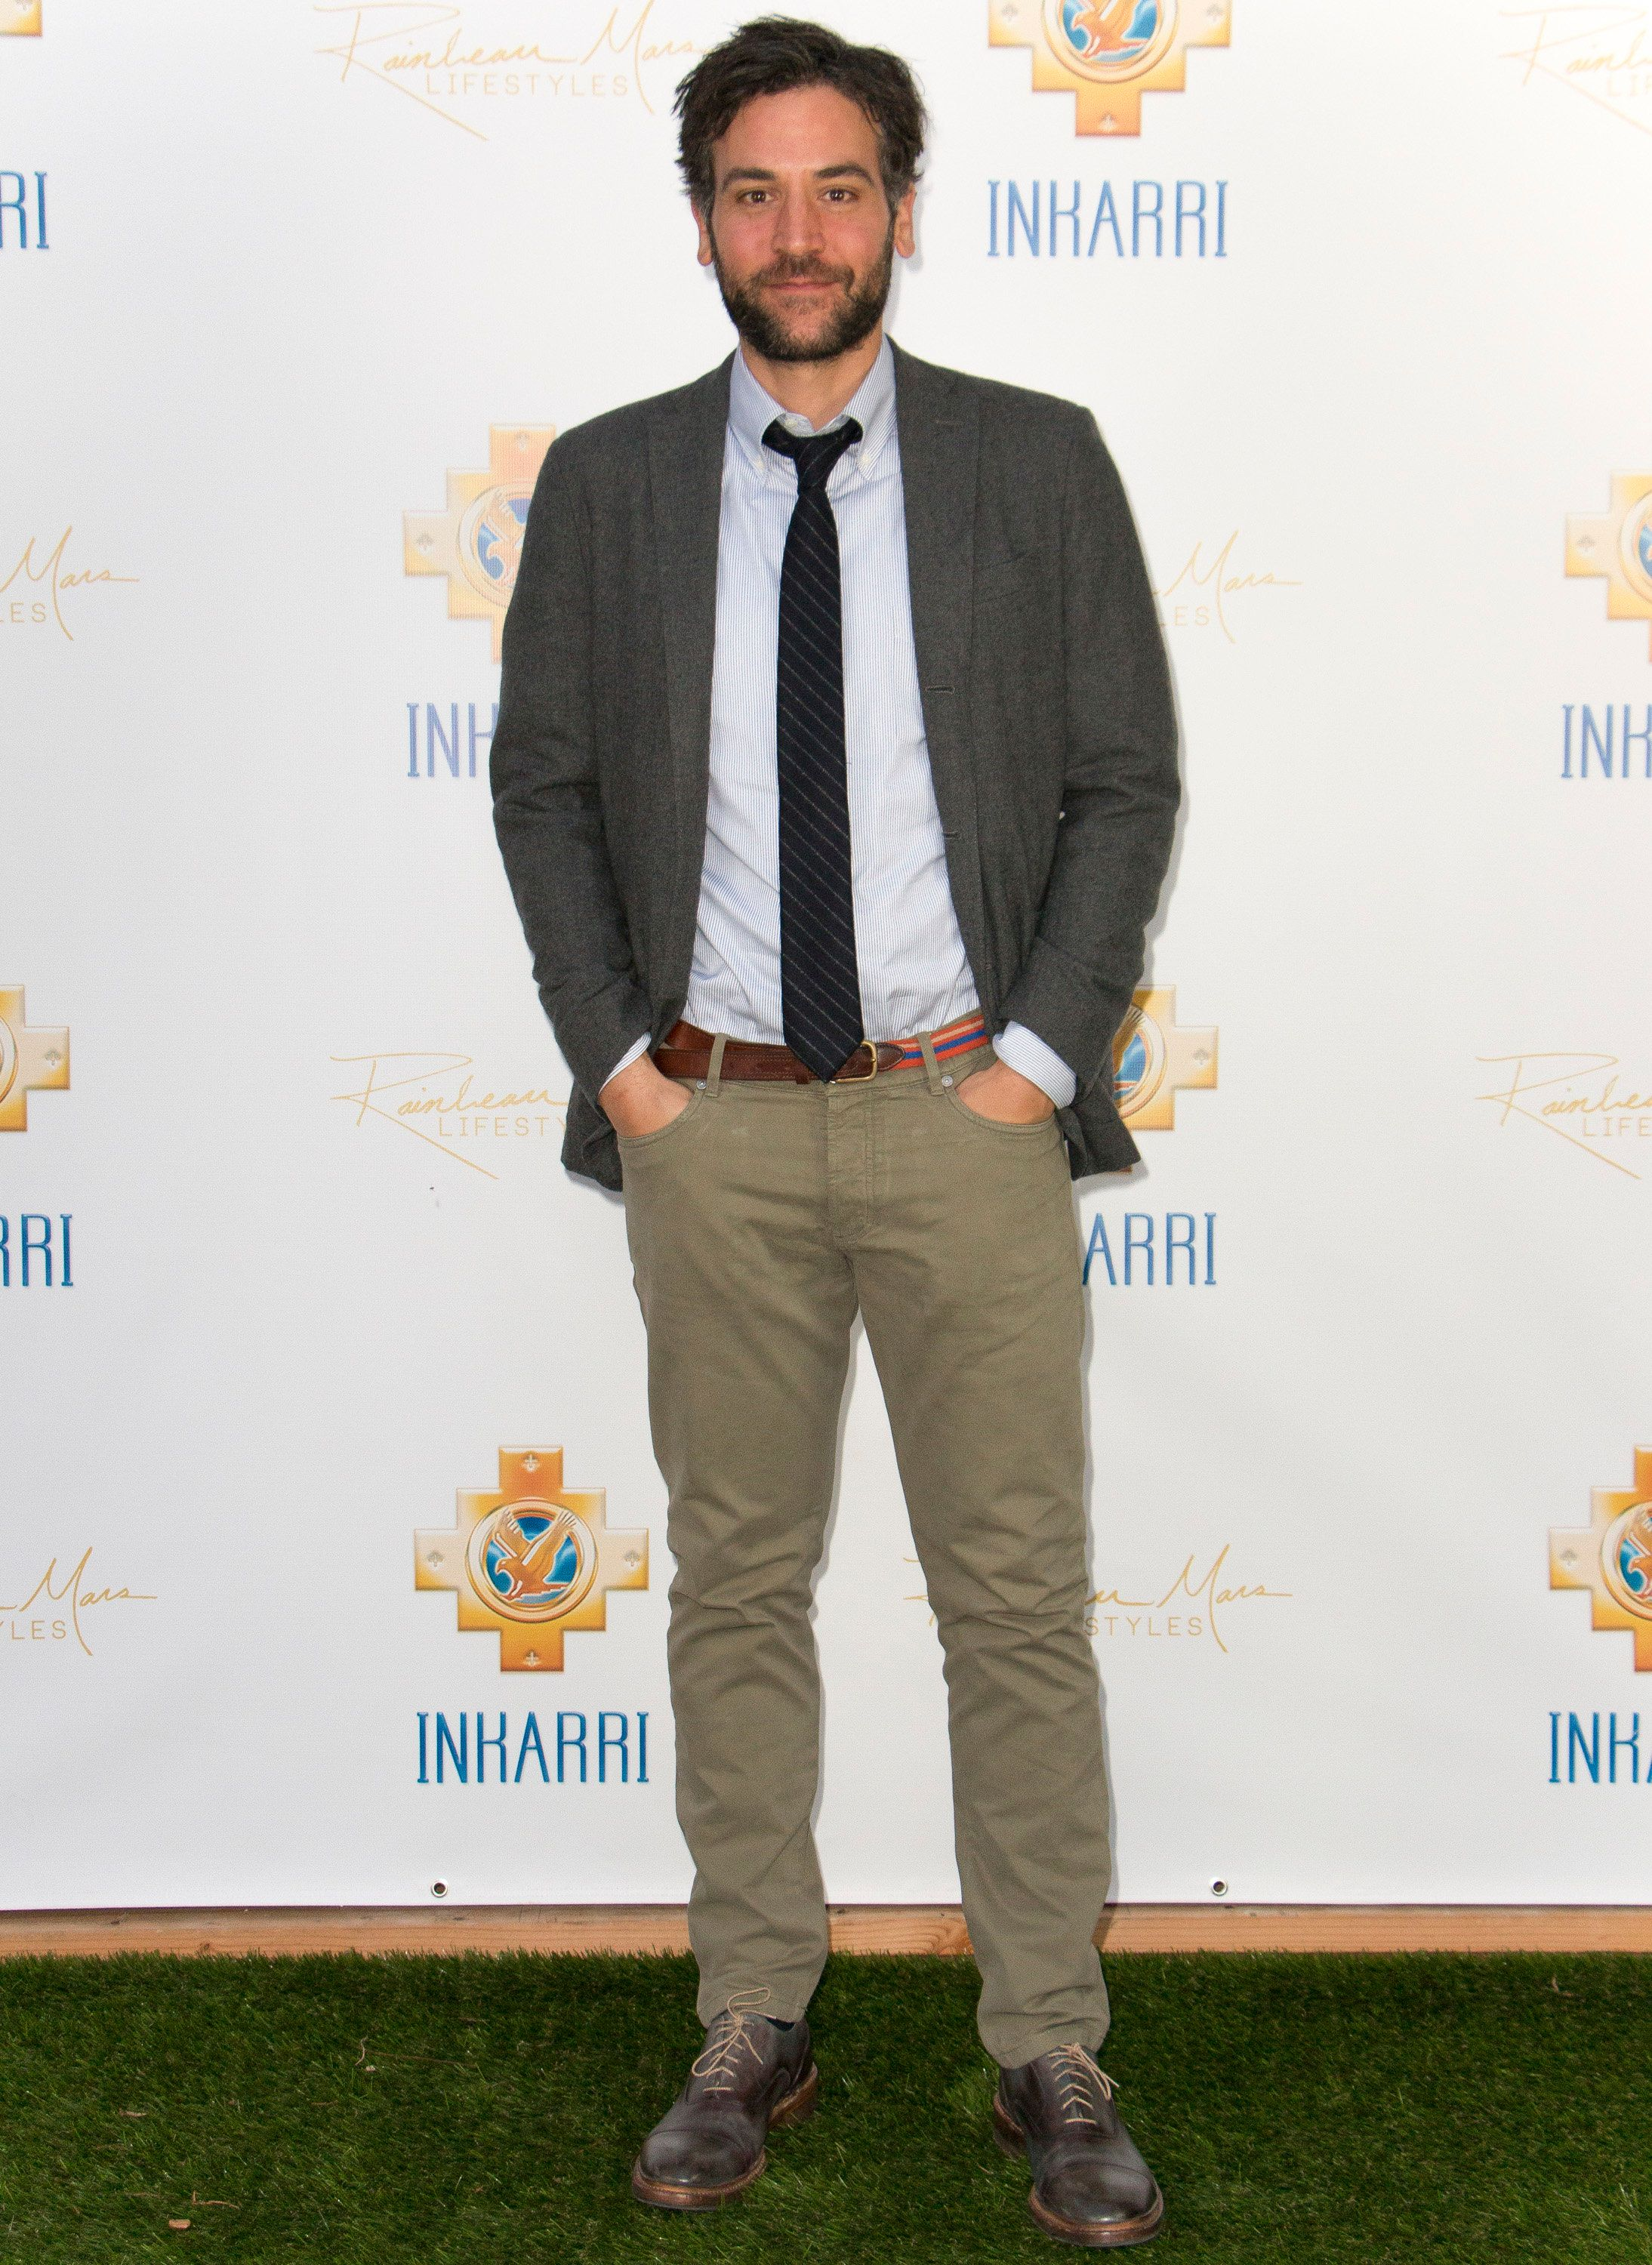 BEVERLY HILLS, CA - OCTOBER 24:  Actor Josh Radnor arrives at An Evening With Inkarri on October 24, 2015 in Beverly Hills, California.  (Photo by Tasia Wells/WireImage)